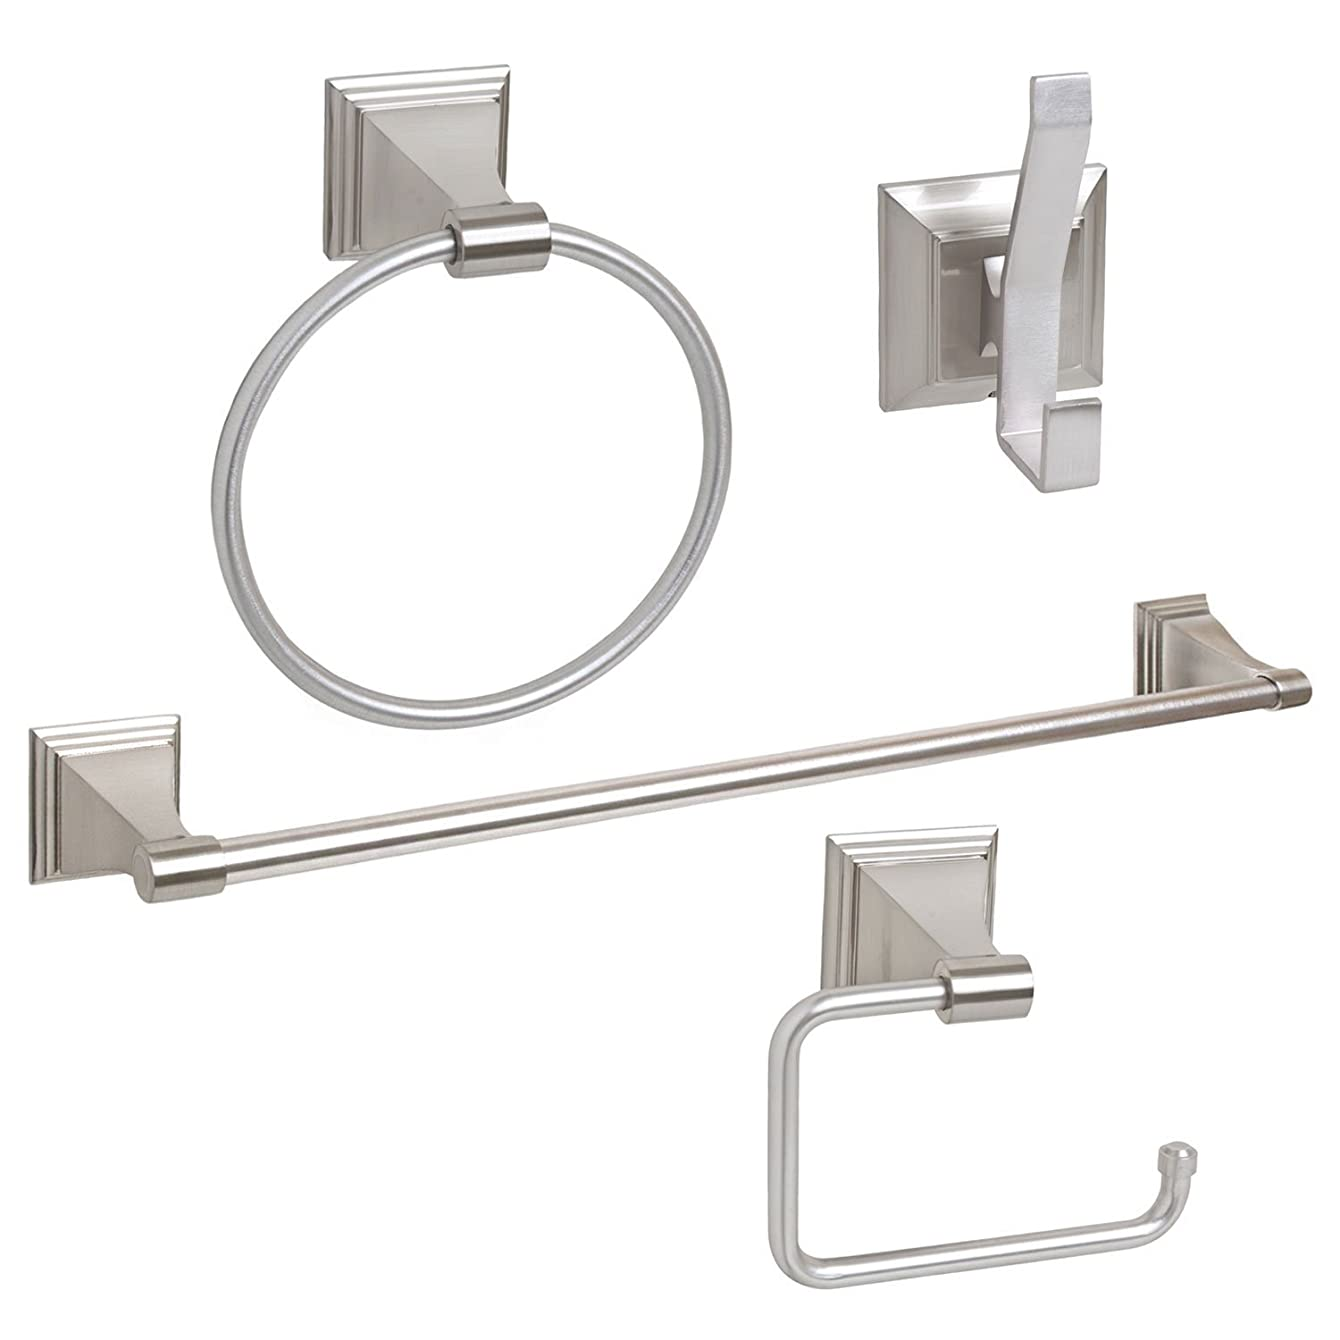 4-Piece Bathroom Hardware Accessory Set With 24